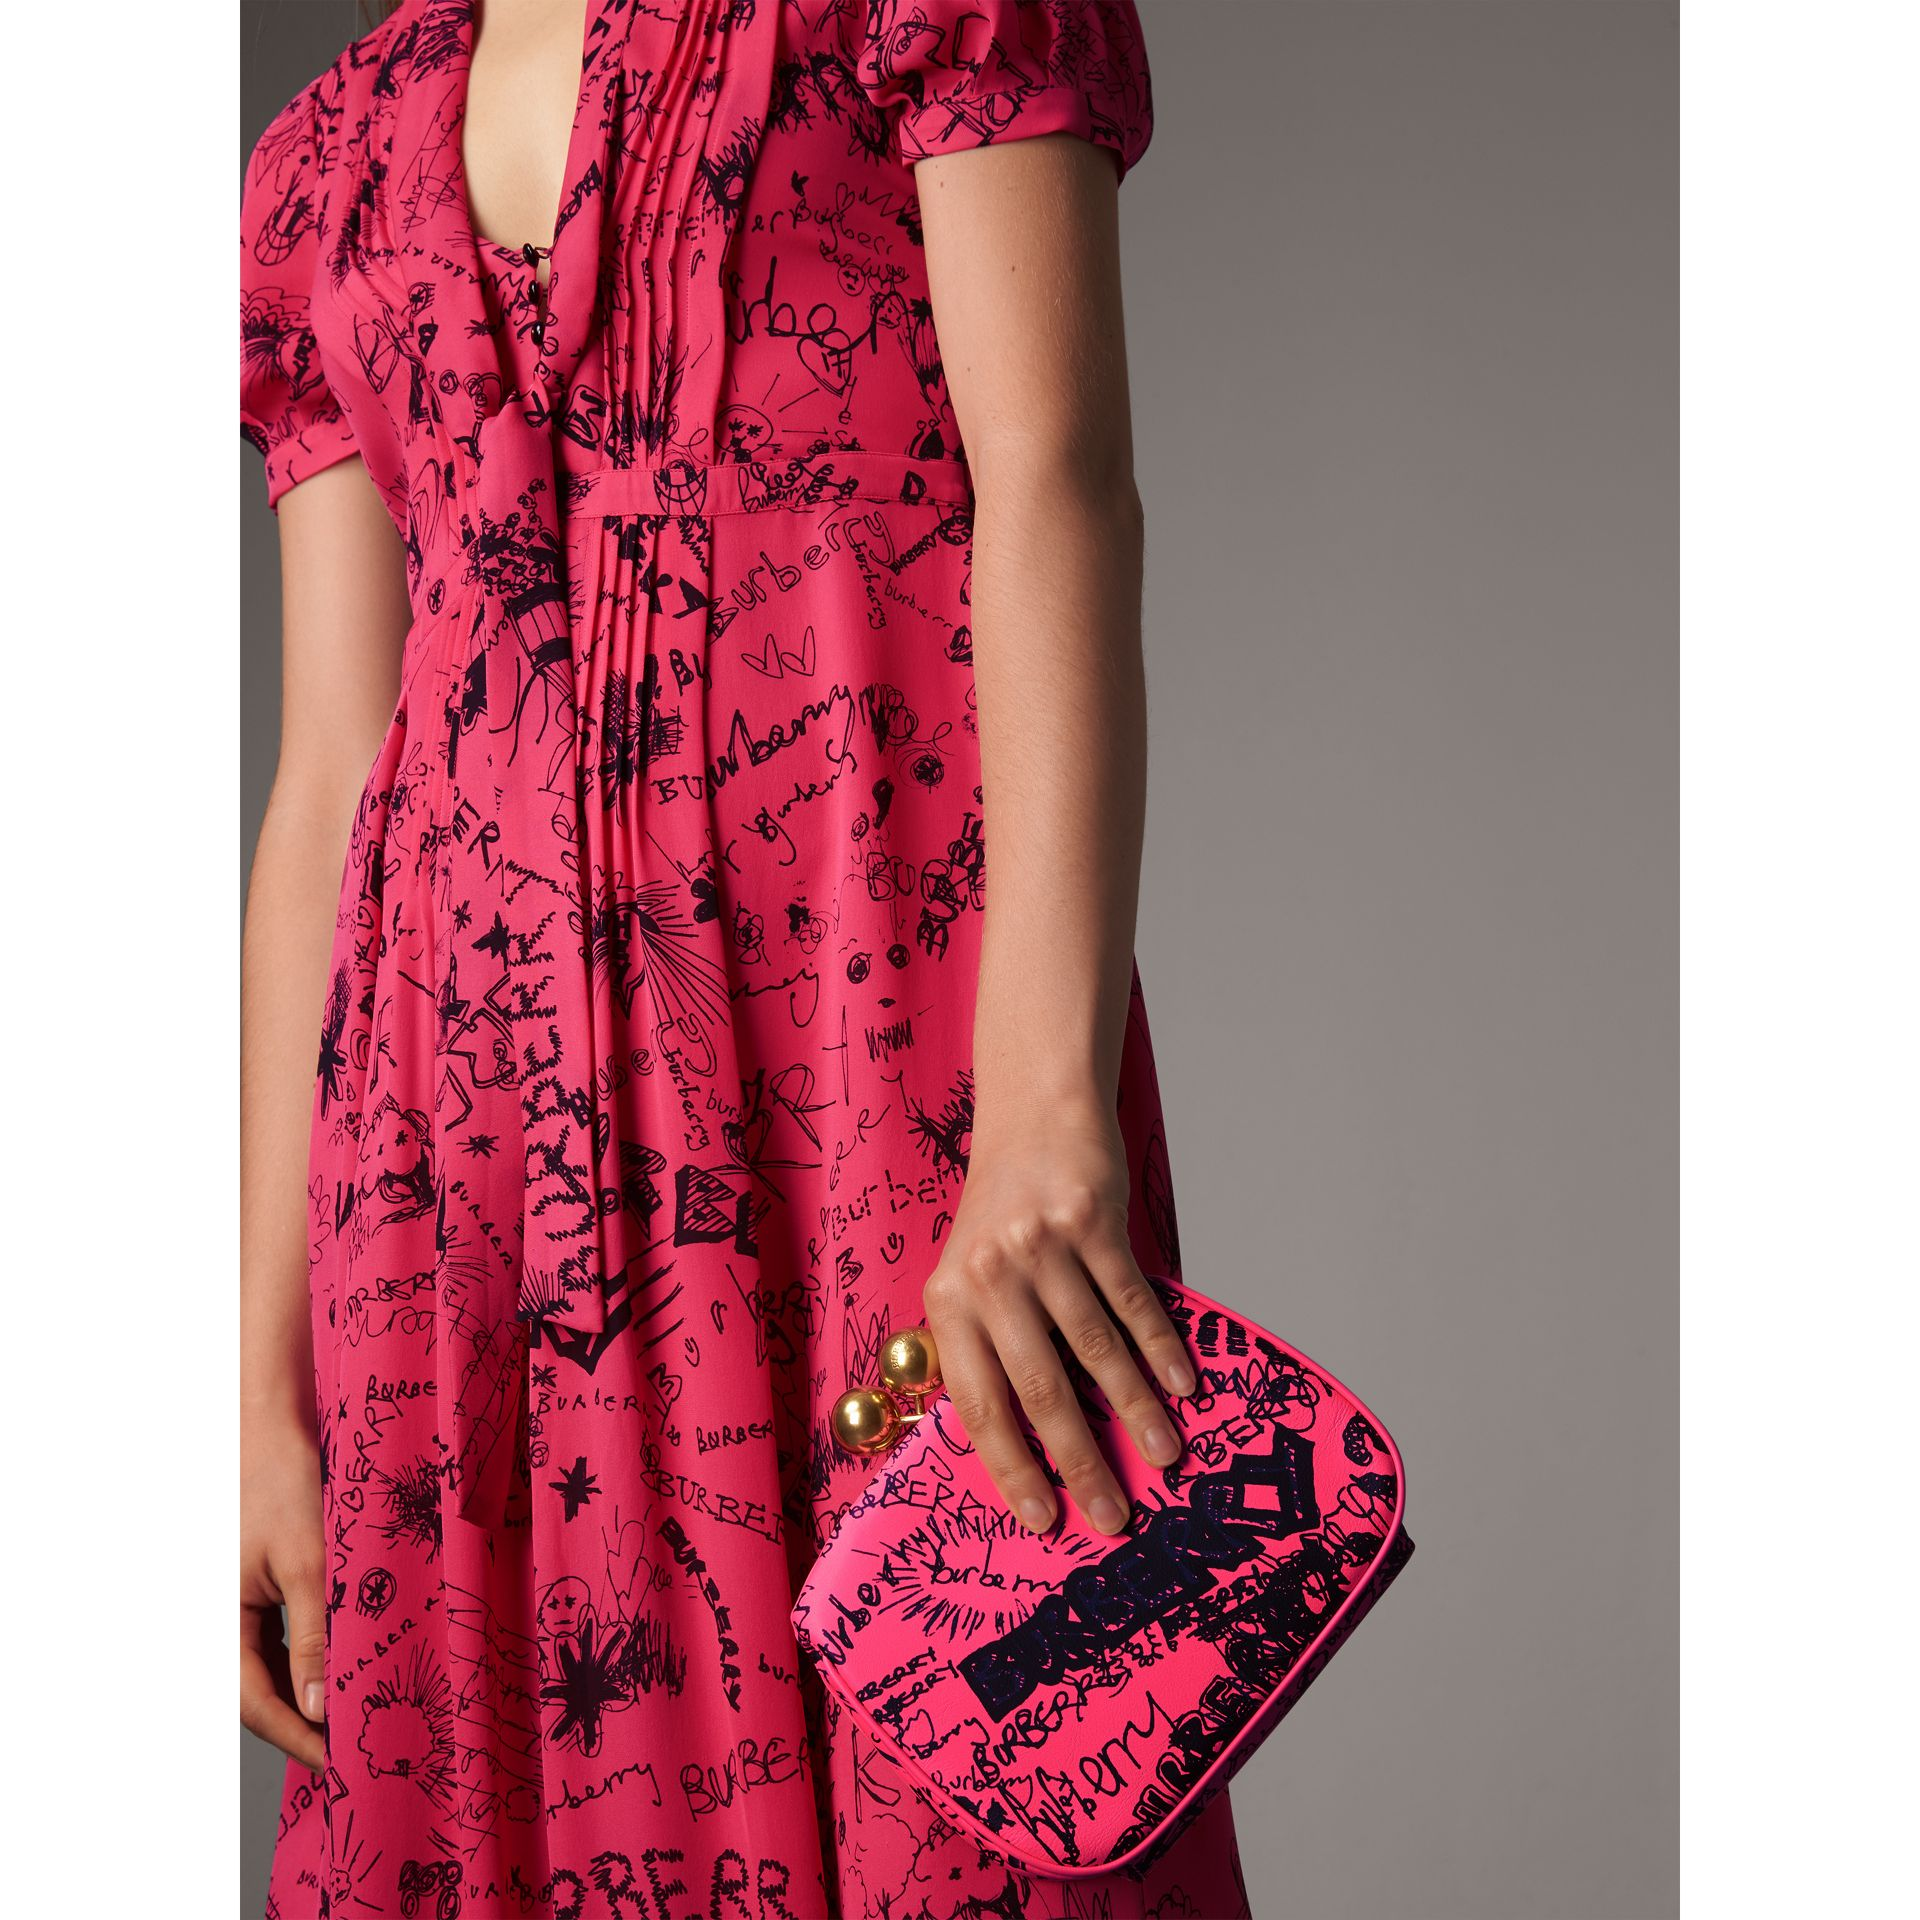 Small Doodle Print Leather Metal Frame Clutch Bag in Neon Pink - Women | Burberry - gallery image 6